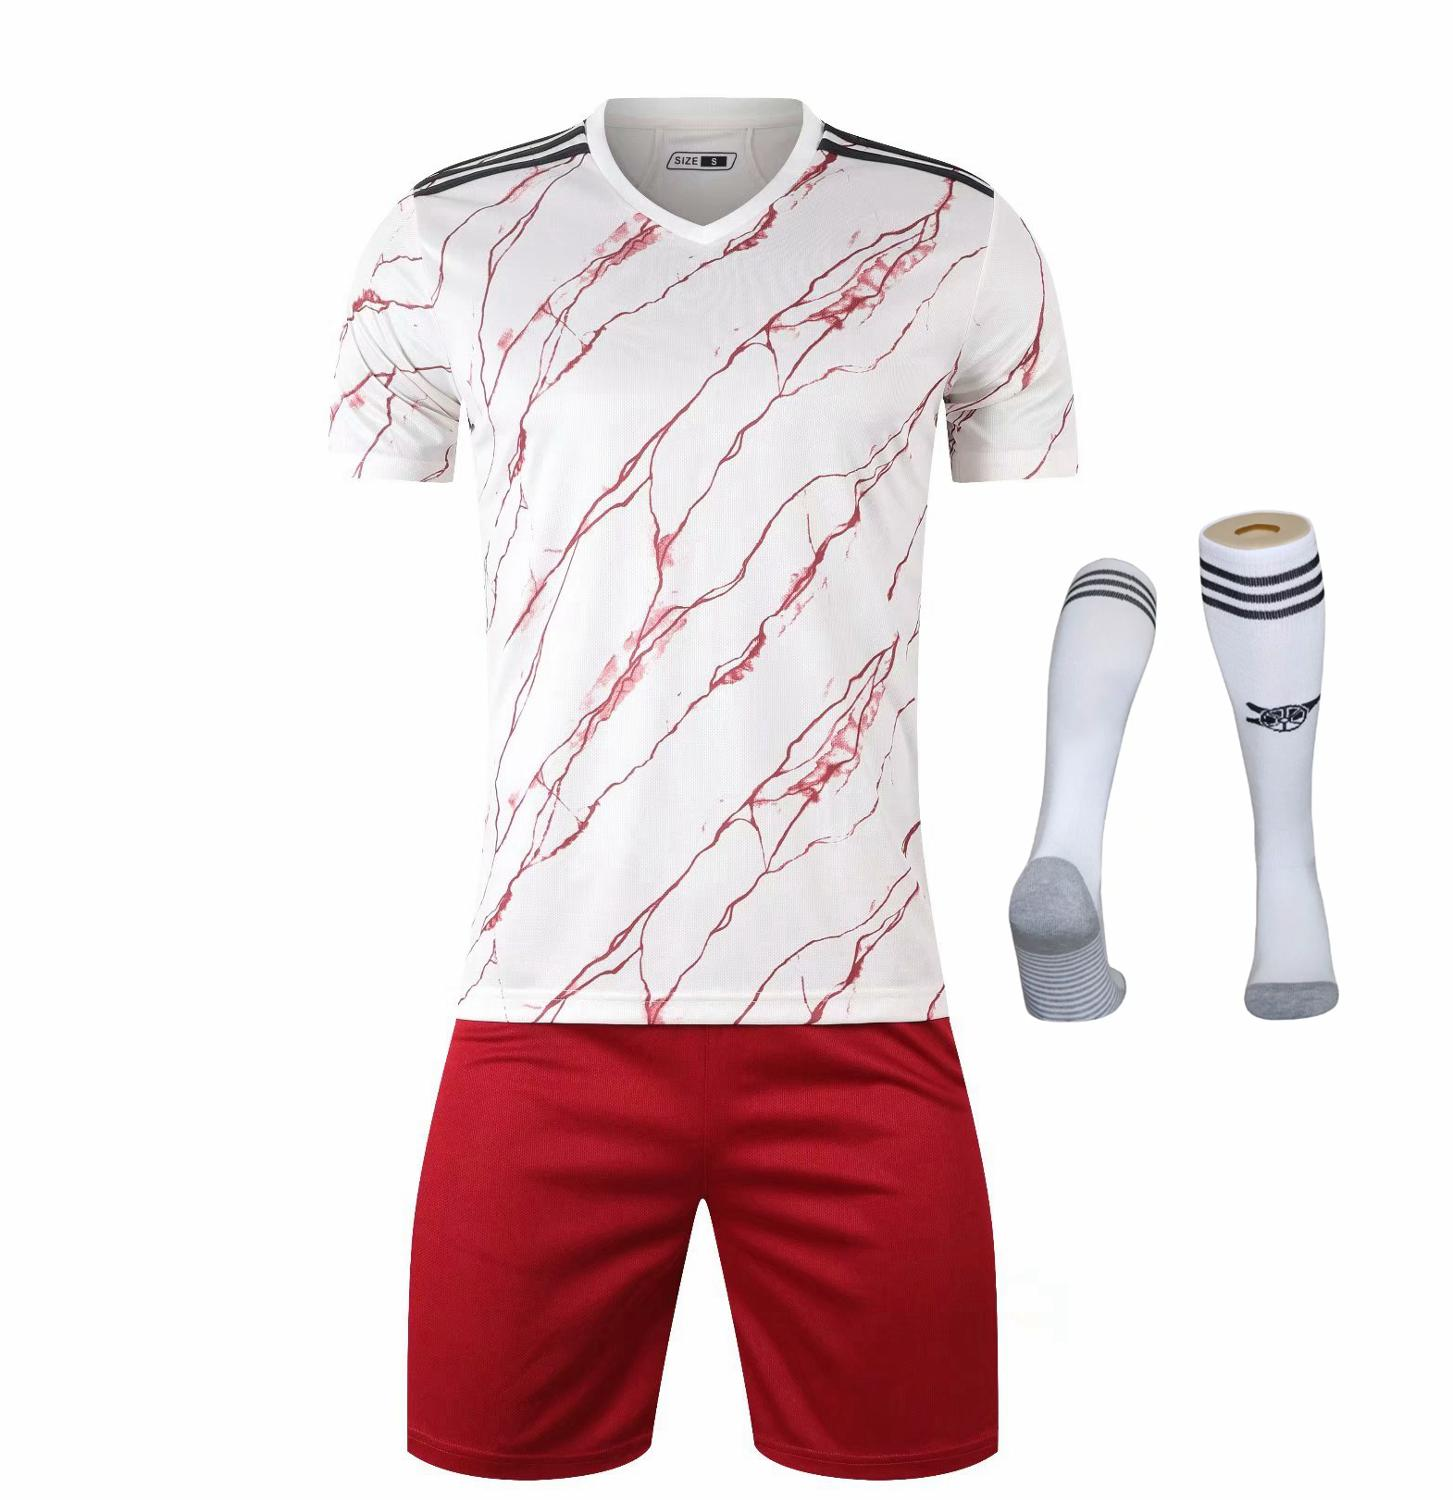 Children Sets football uniforms boys and girls sports kids youth training suits blank custom print soccer set with socks 7